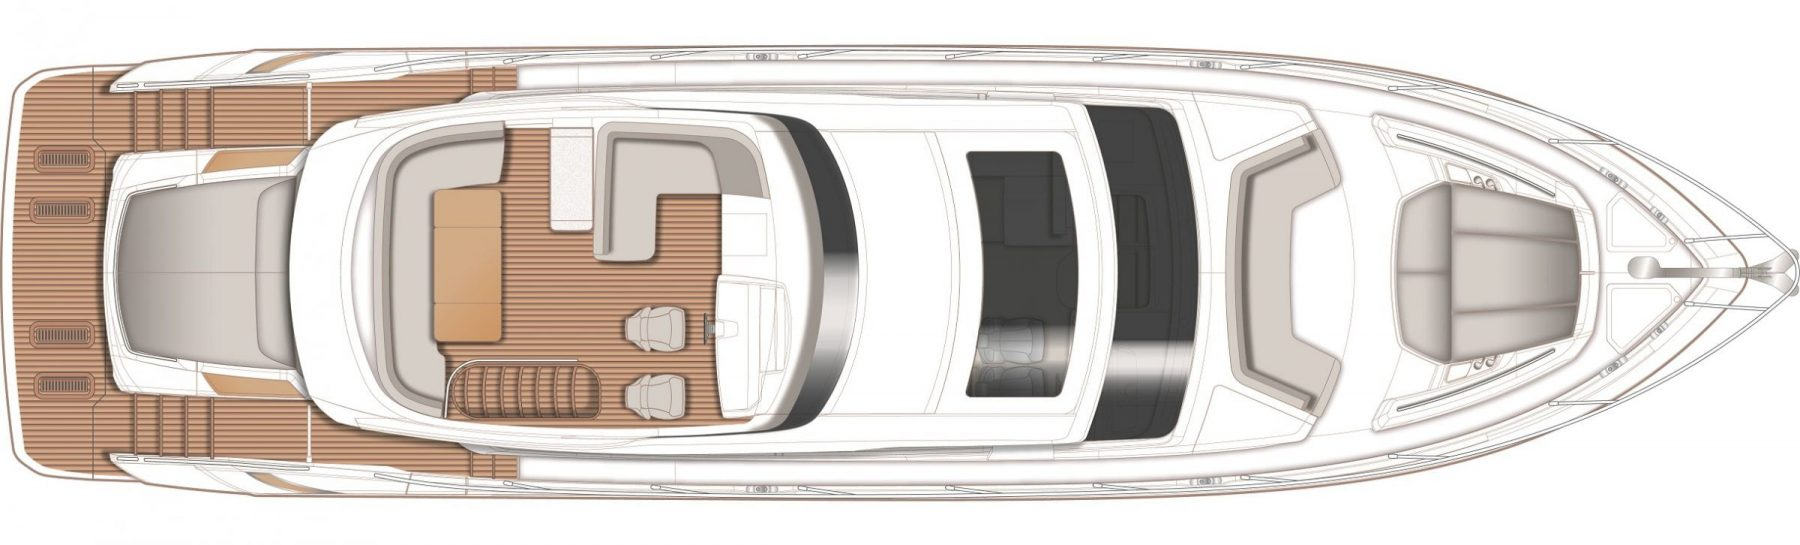 S65 Layout Flybridge